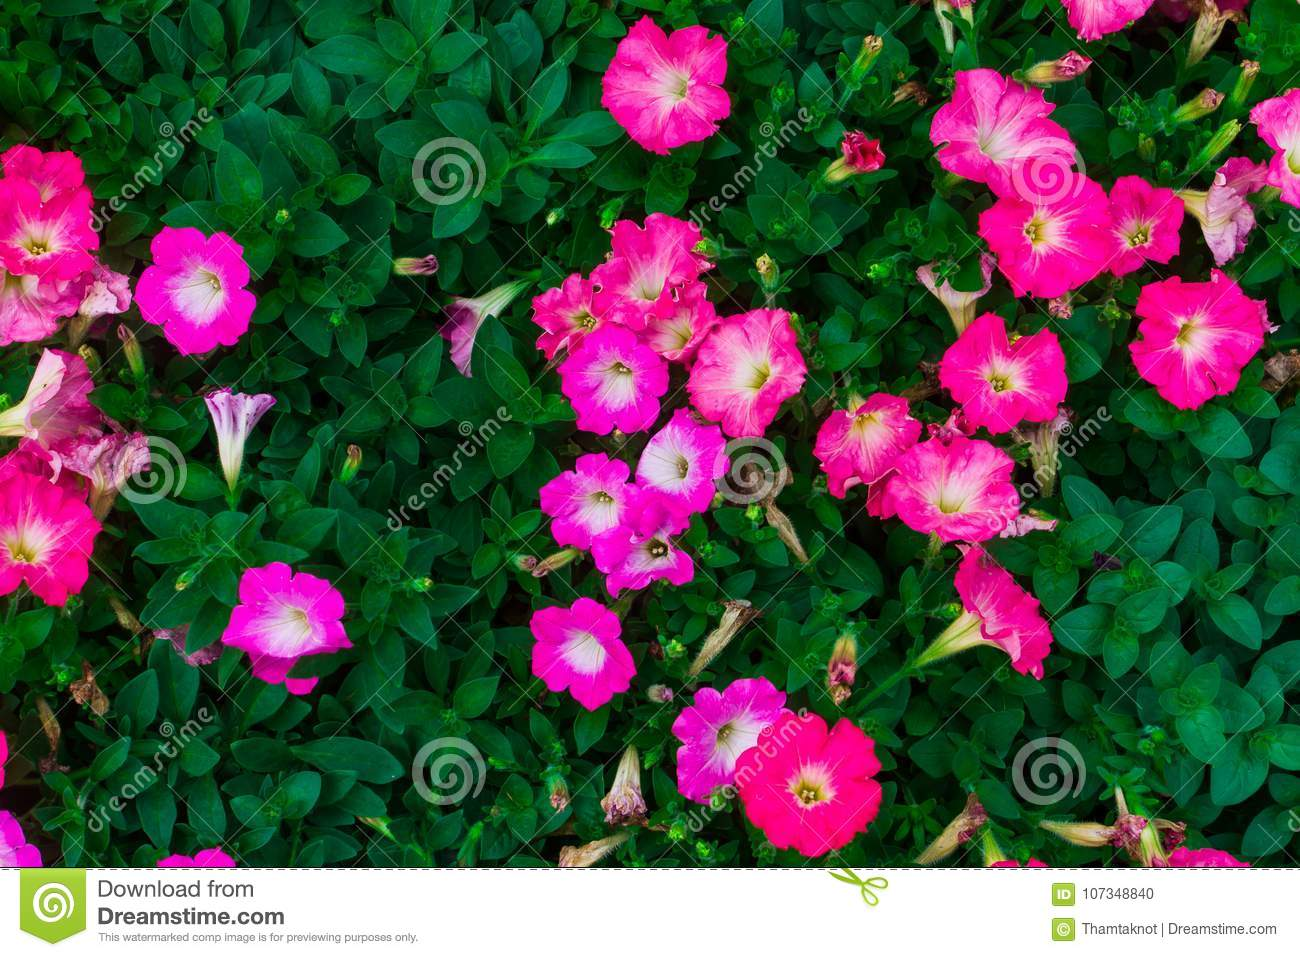 Petunia Hybrida Plant Over The Years Is Small. The Flowers Are Large ...